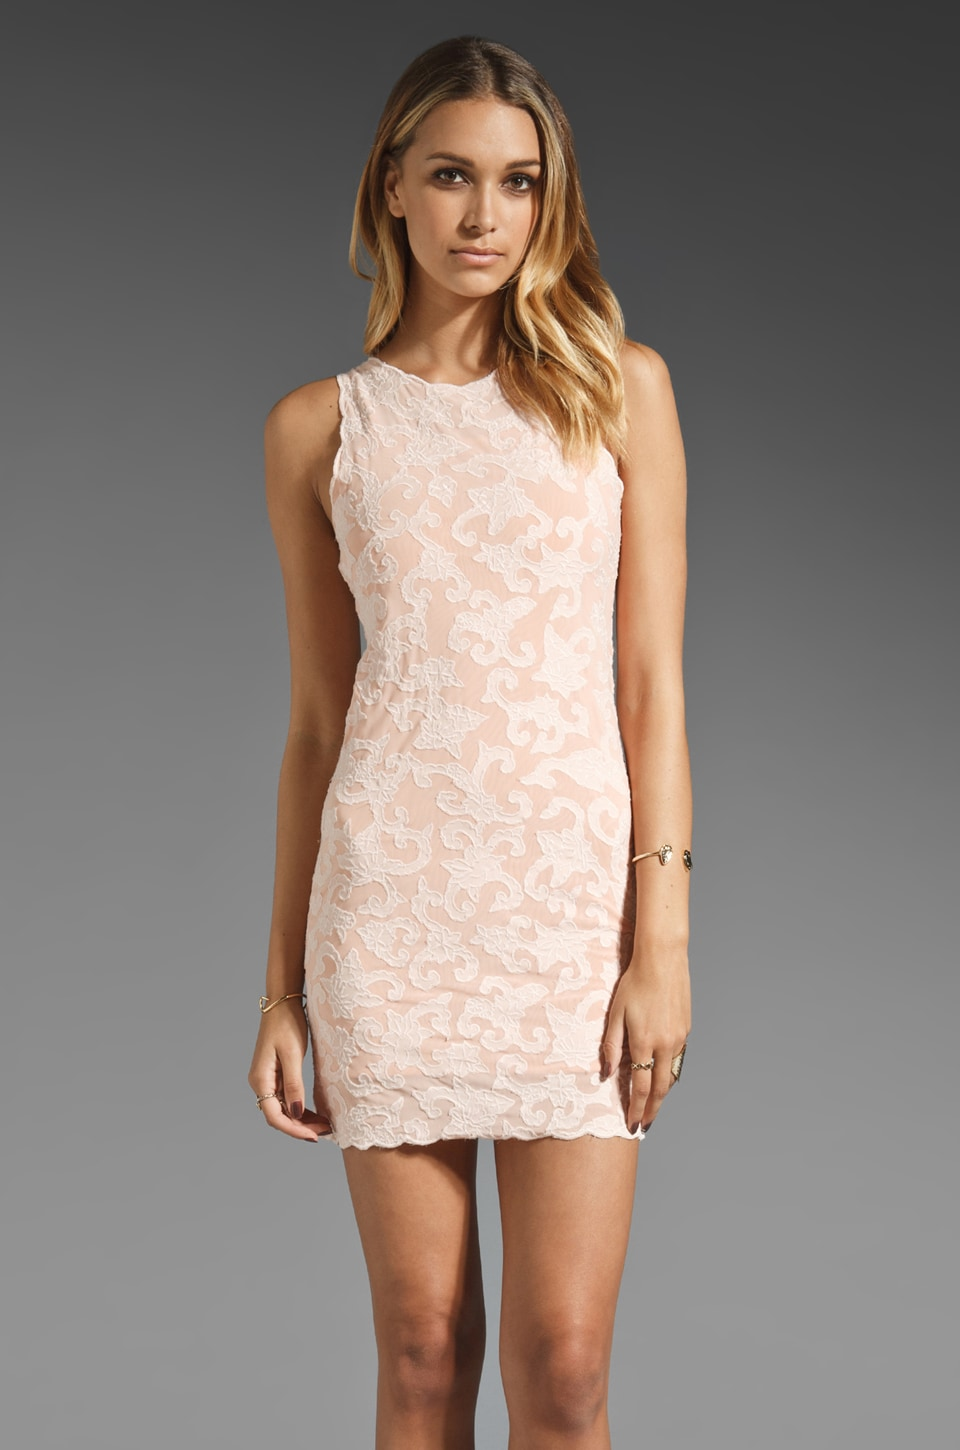 Talulah Horizon Lace Dress in Pastel Peach